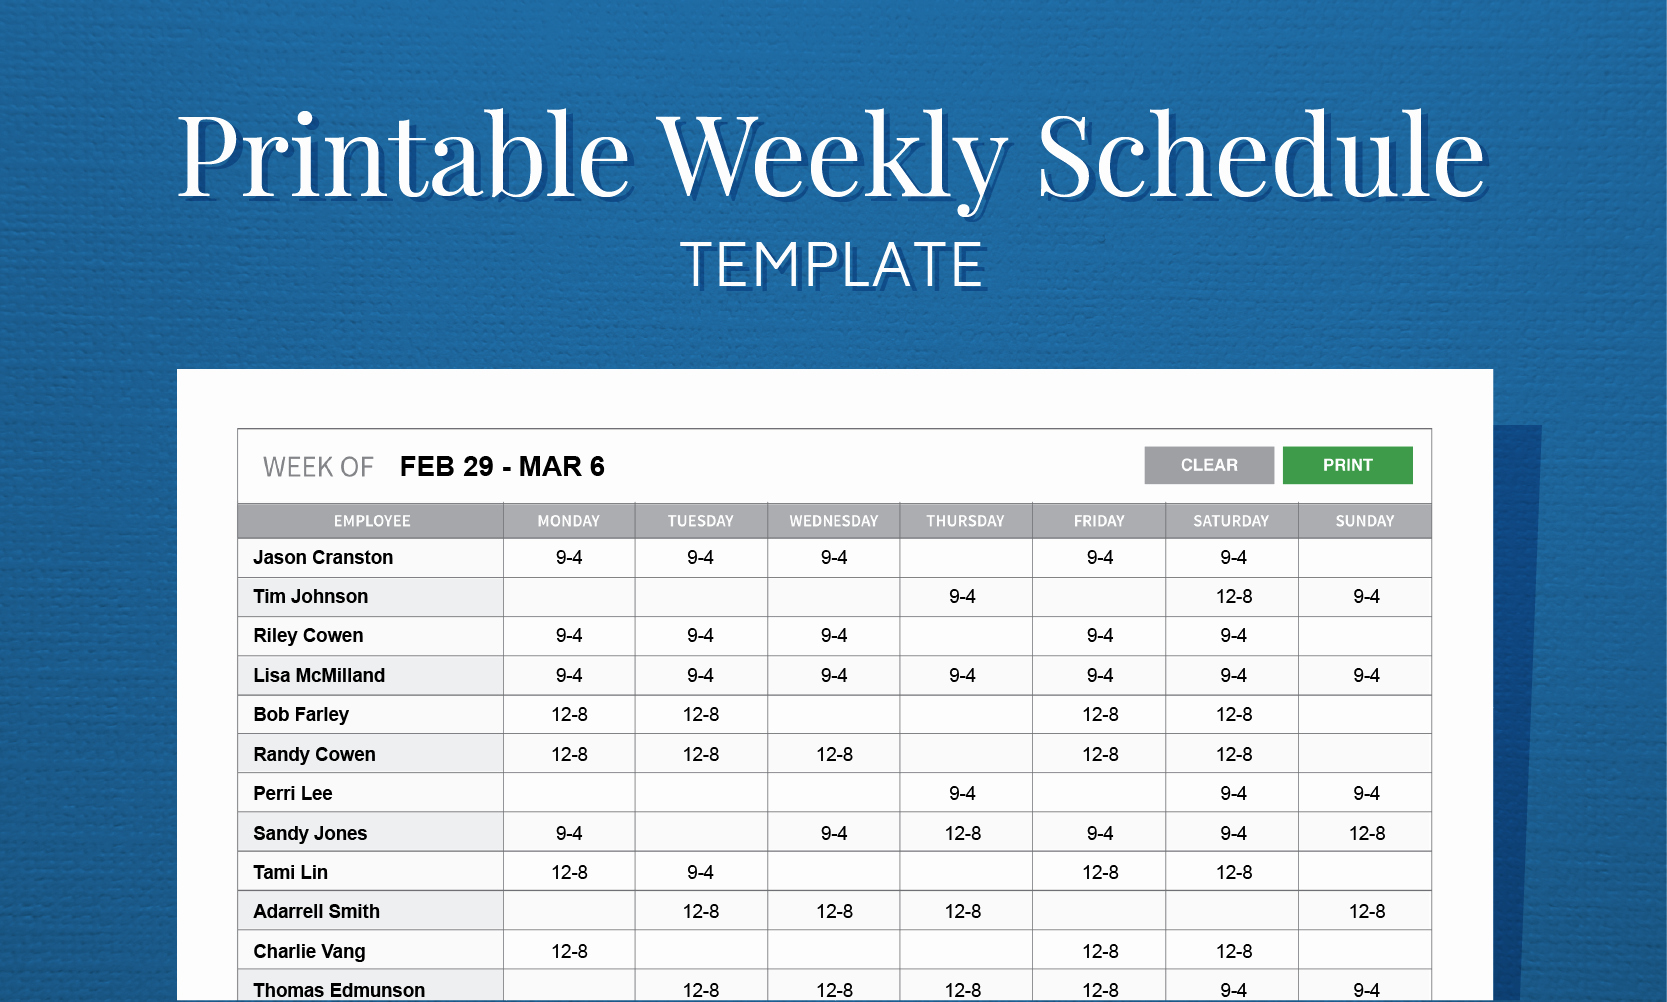 Work Week Schedule Template Inspirational Free Printable Weekly Work Schedule Template for Employee